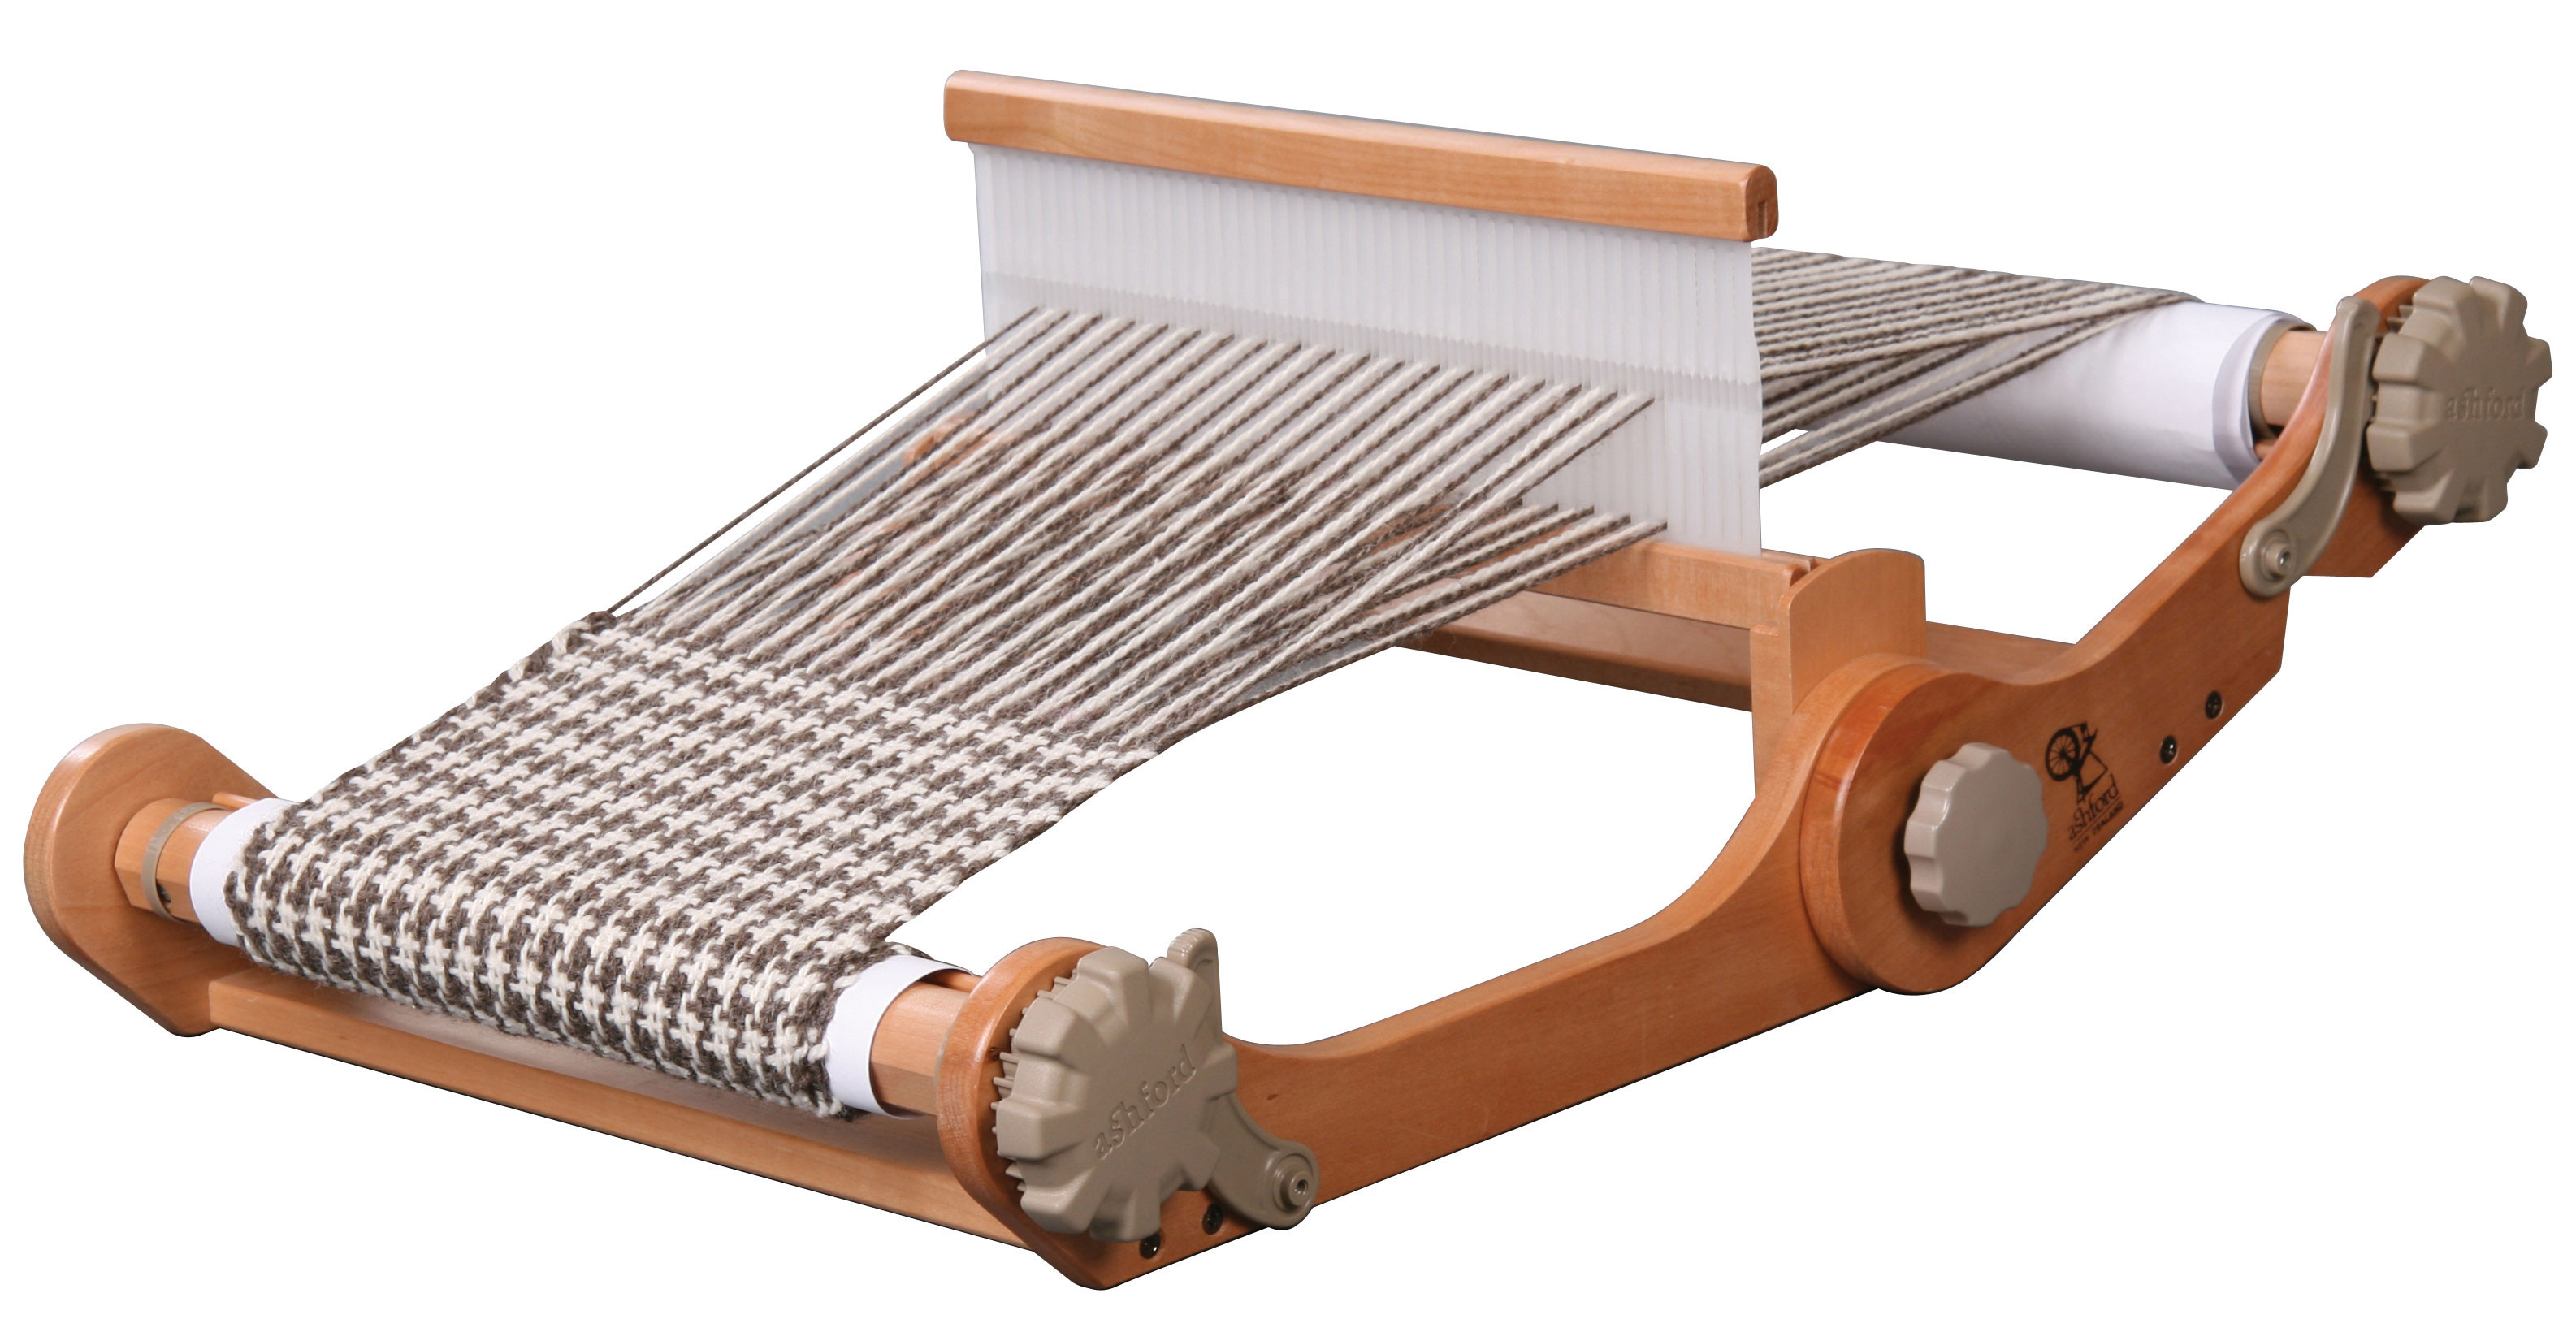 Weaving Loom Inspirational Weaversmith Of Attractive 45 Models Weaving Loom